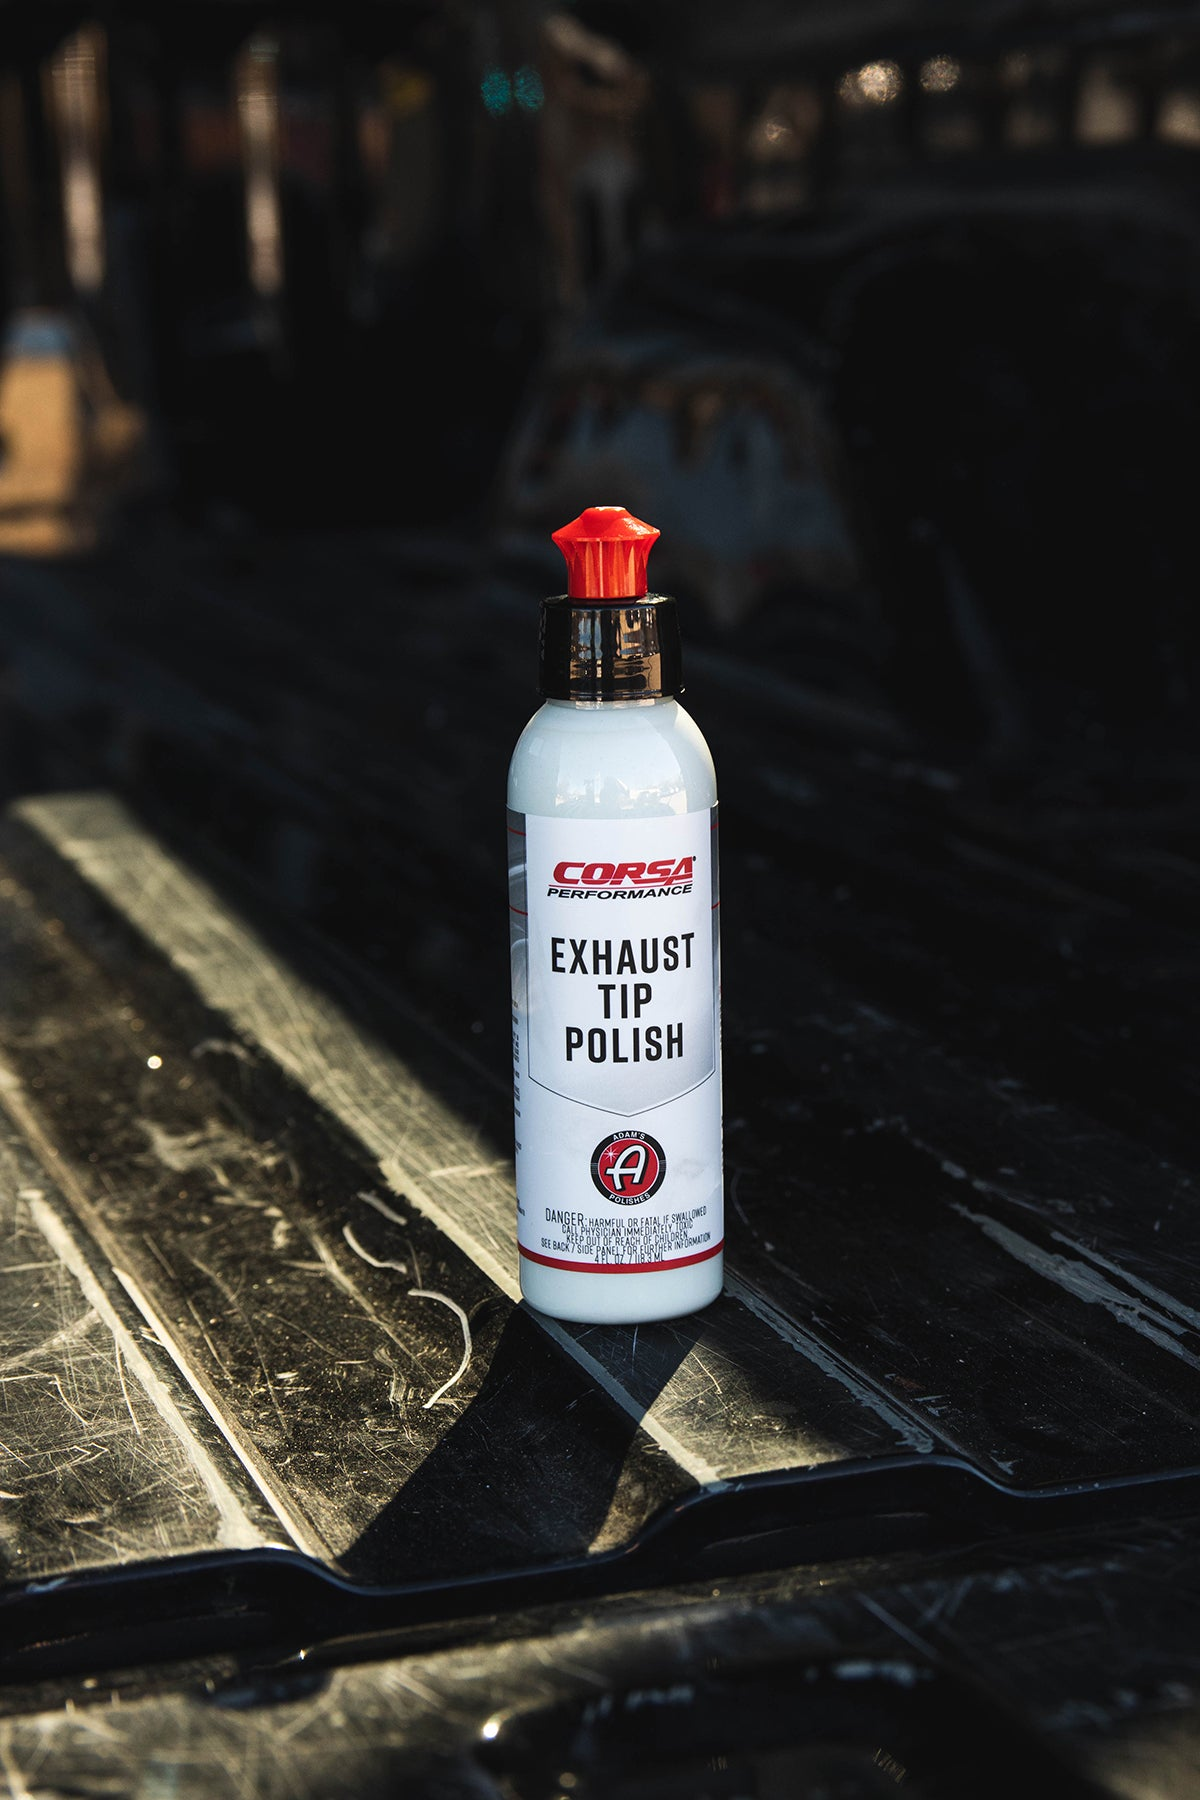 Exhaust Tip Polish (14092) 4 FL OZ